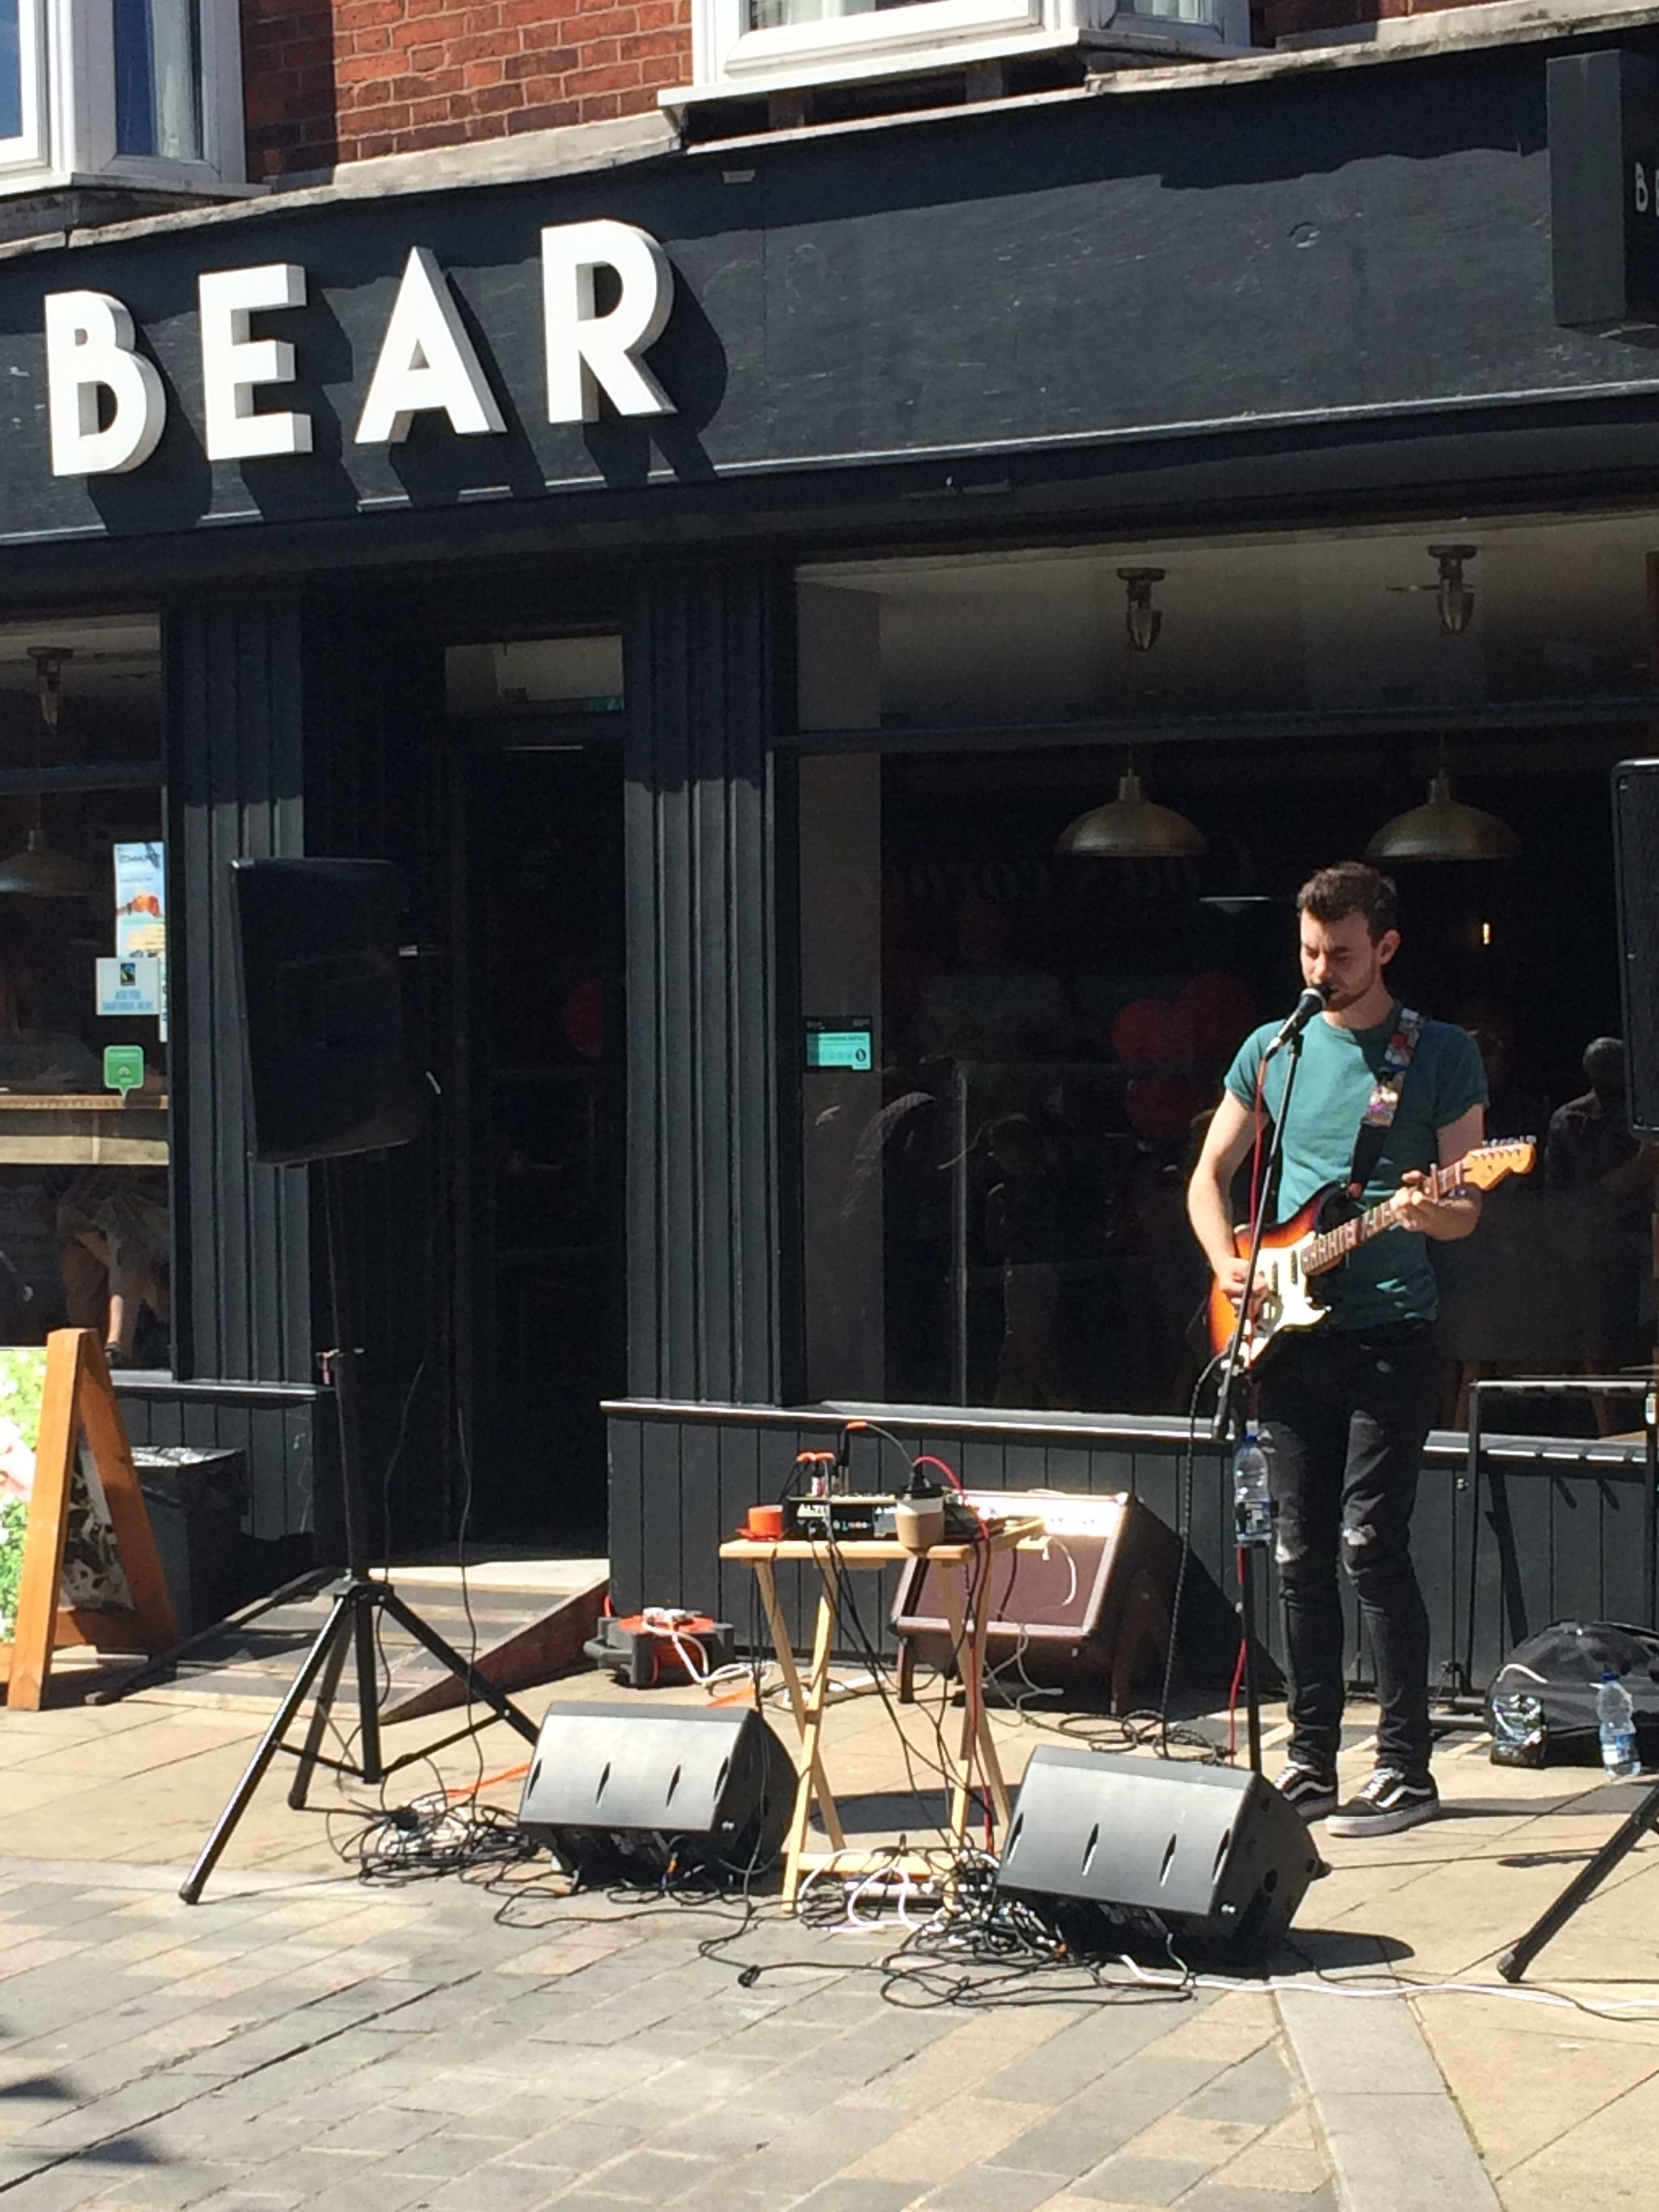 Live music outside BEAR